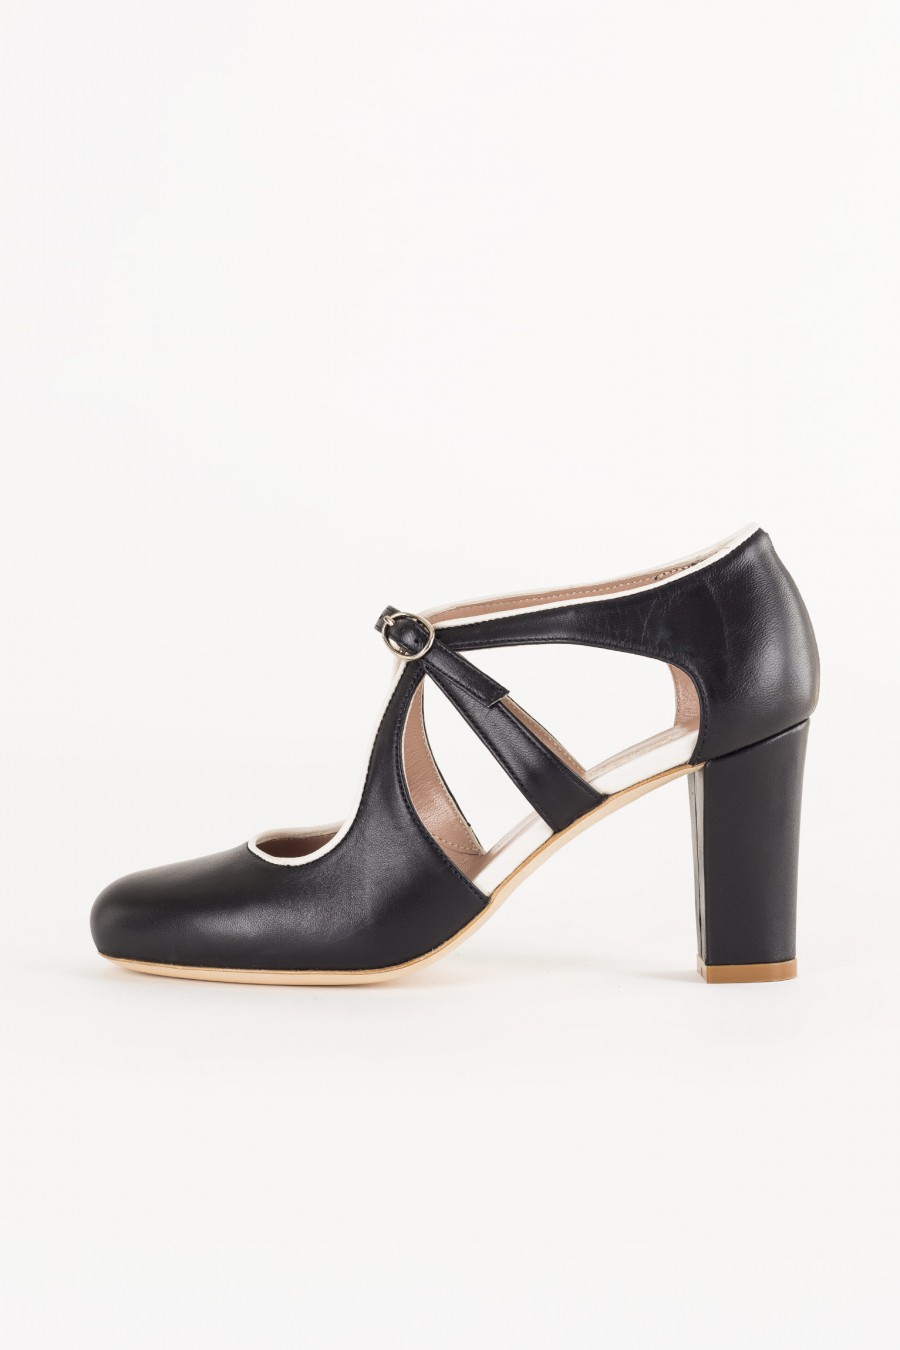 black shoe with heel